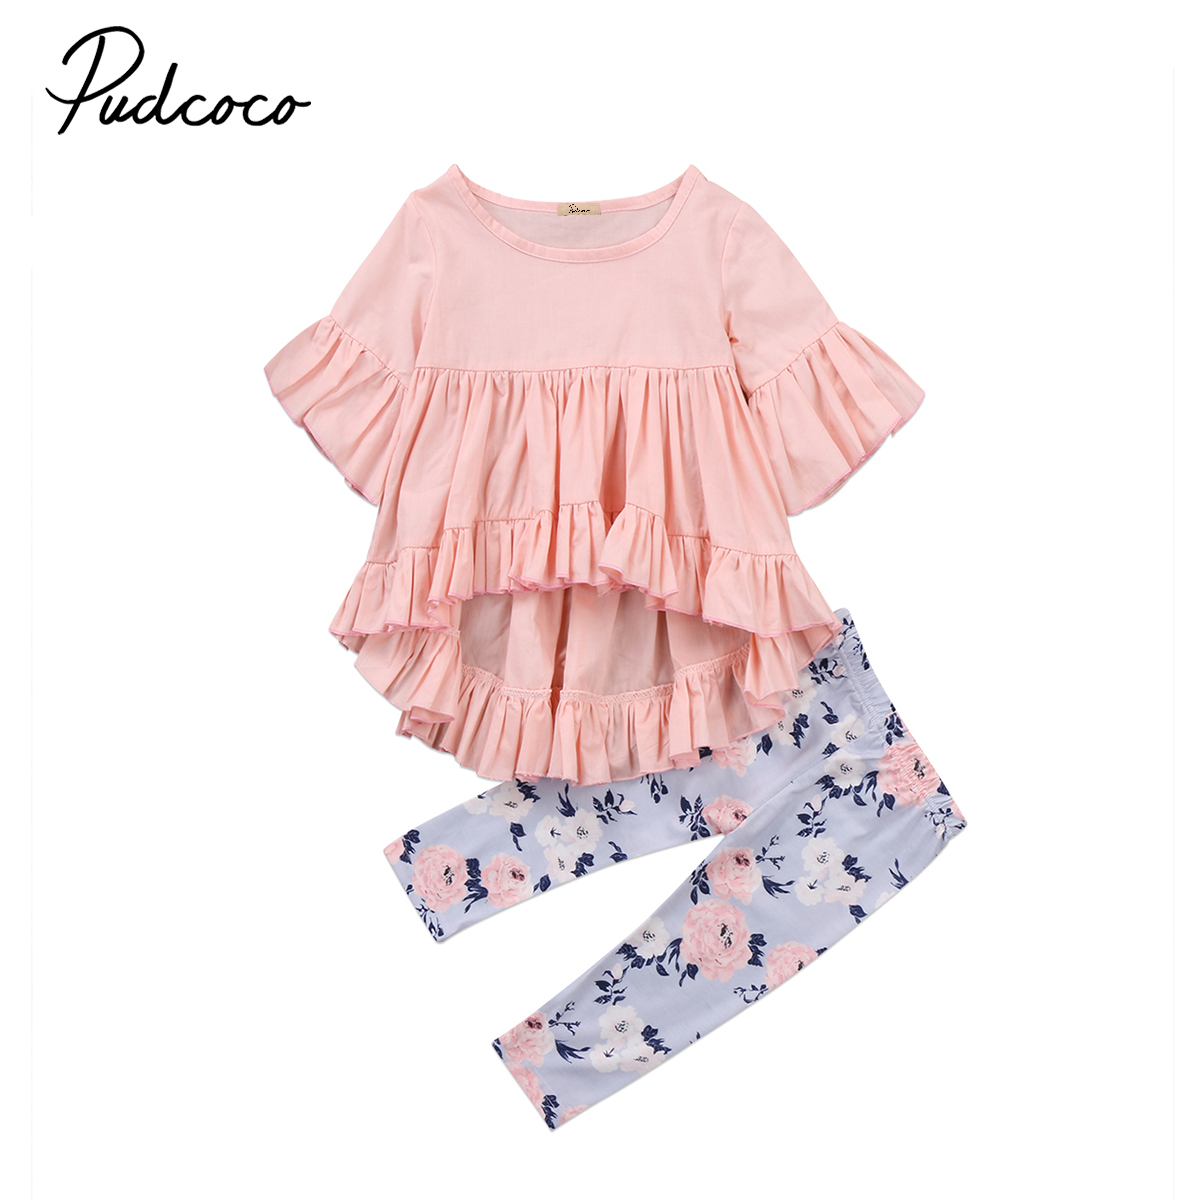 Girls' Clothing Open-Minded Baby Girl Off Shoulder Ruffle Tops Denim Shorts Pants 2pcs Outfit Clothes Summer 100% Guarantee